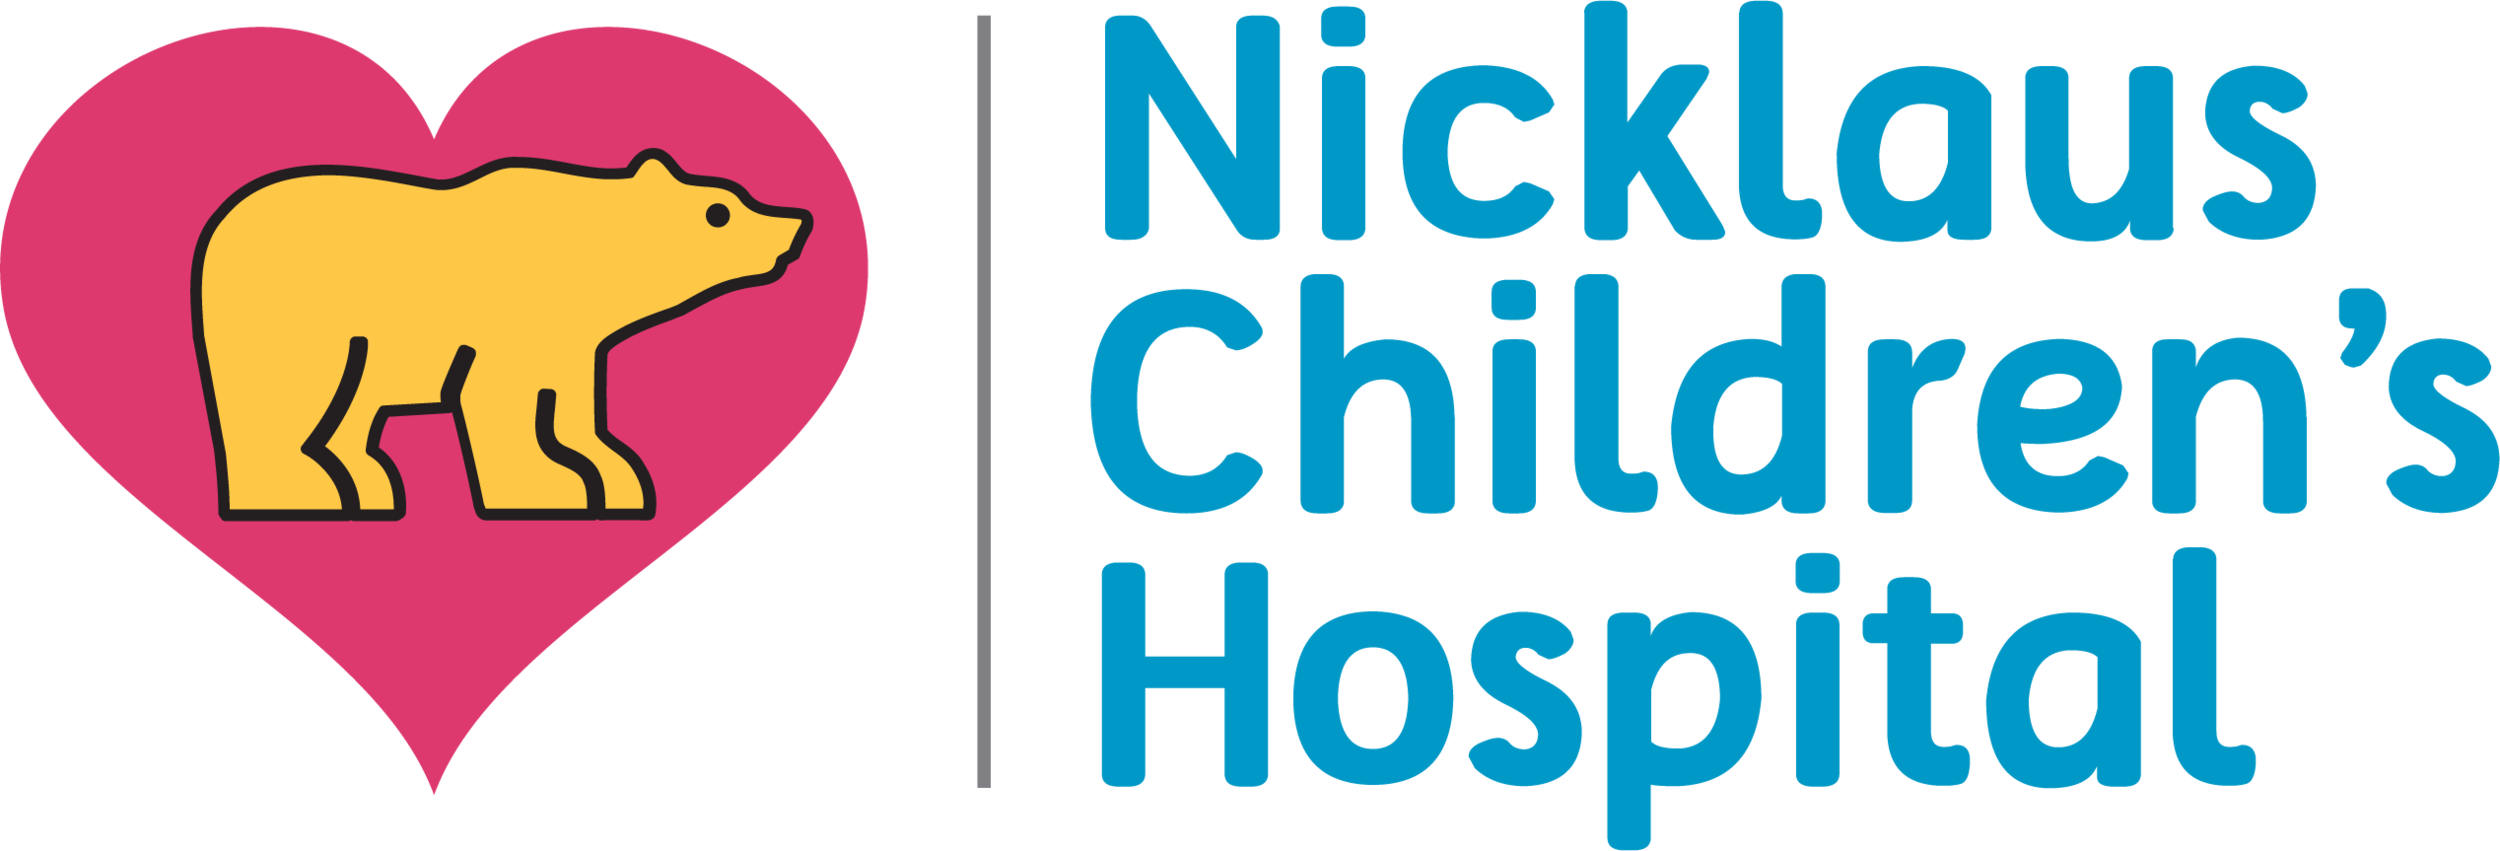 nicklauschildrens_Nicklaus-Childrens-HOSPITAL-LOGO.png